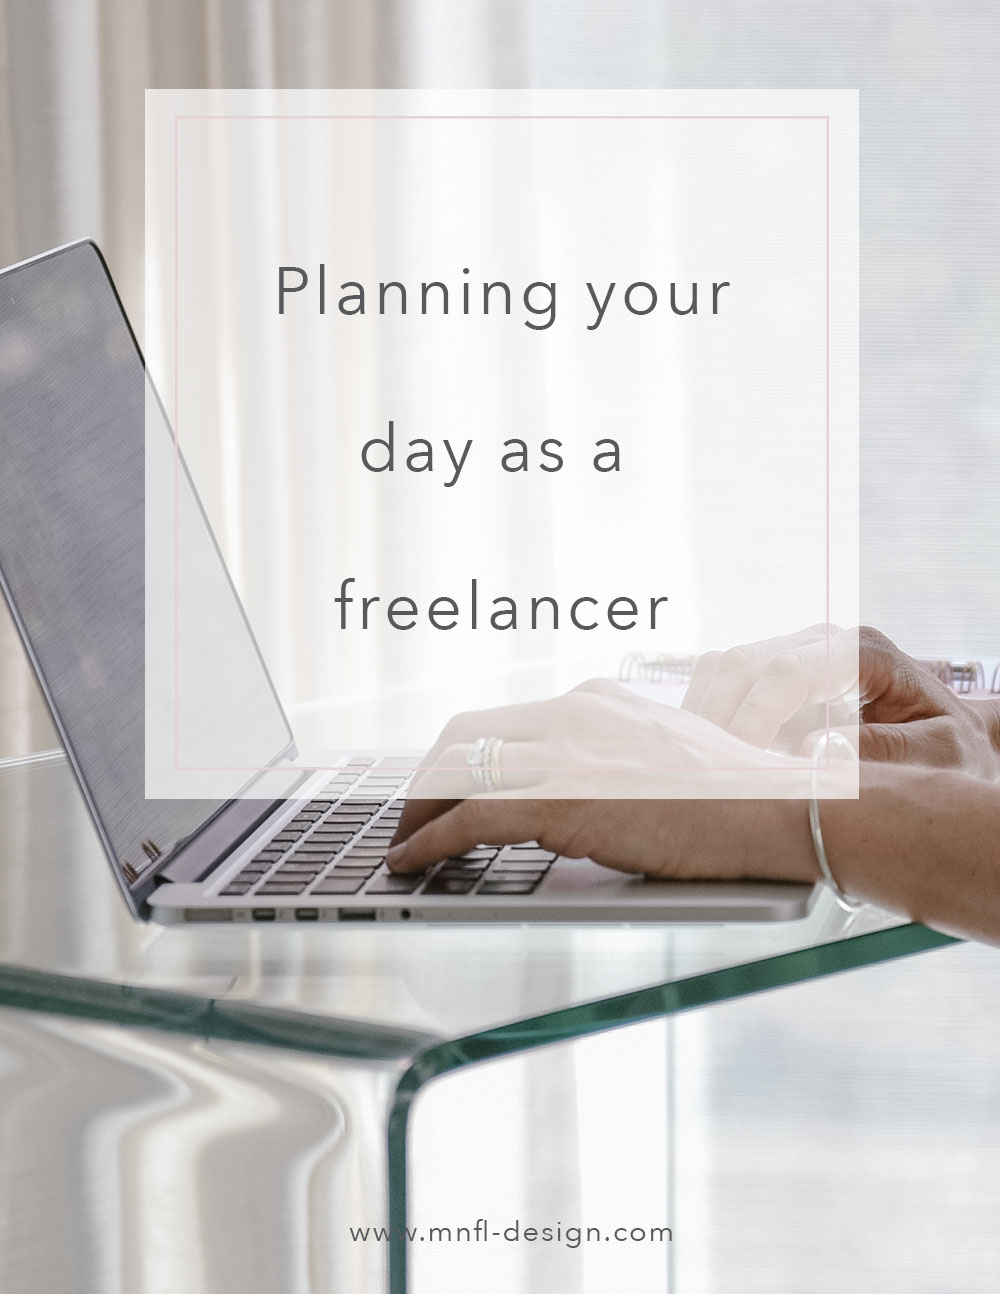 Planning-your-day-as-a-freelancer.jpg